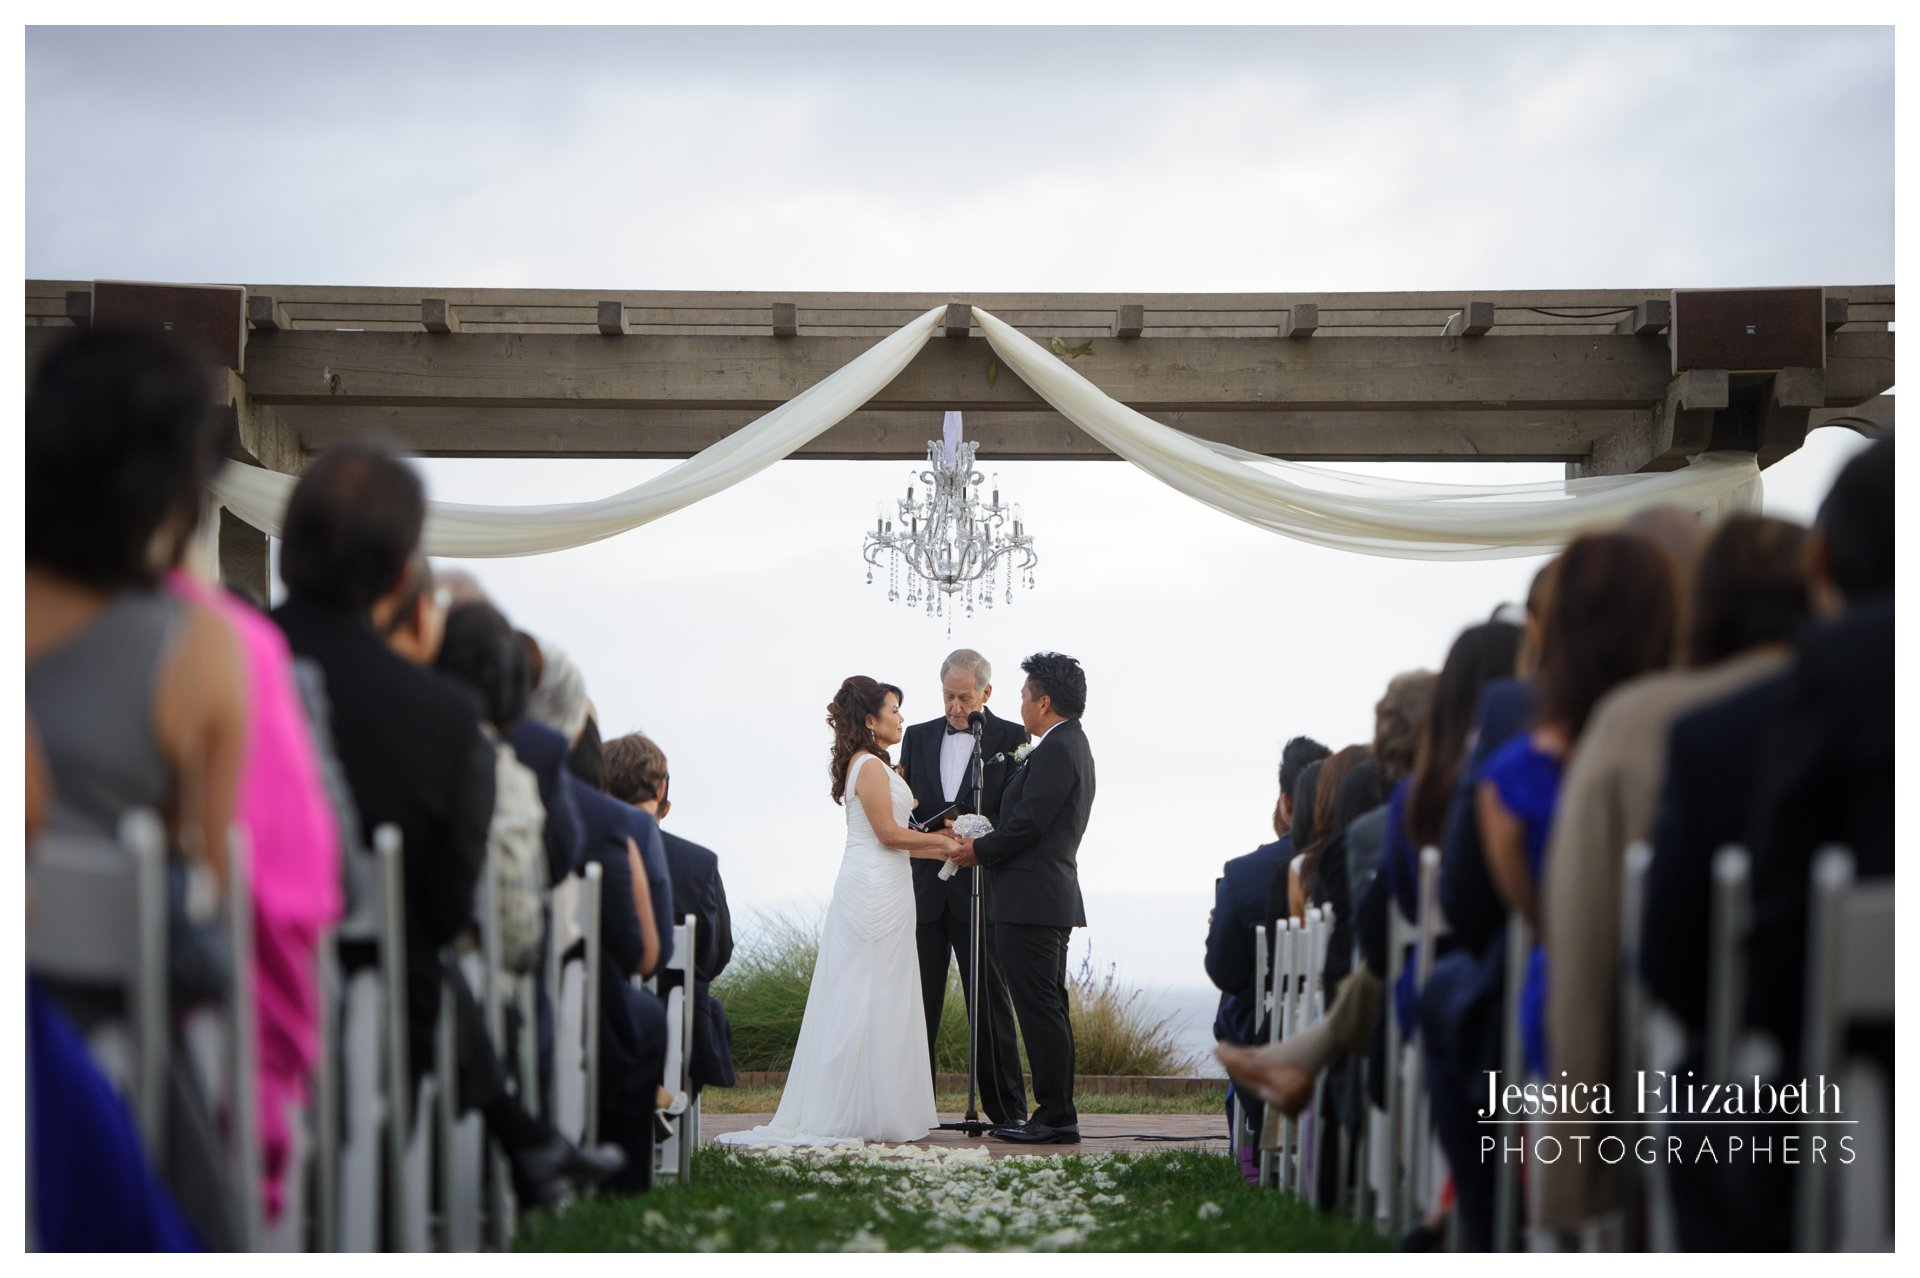 12-Terranea-Palos-Verdes-Wedding-Photography-by-Jessica-Elizabeth-w.jpg